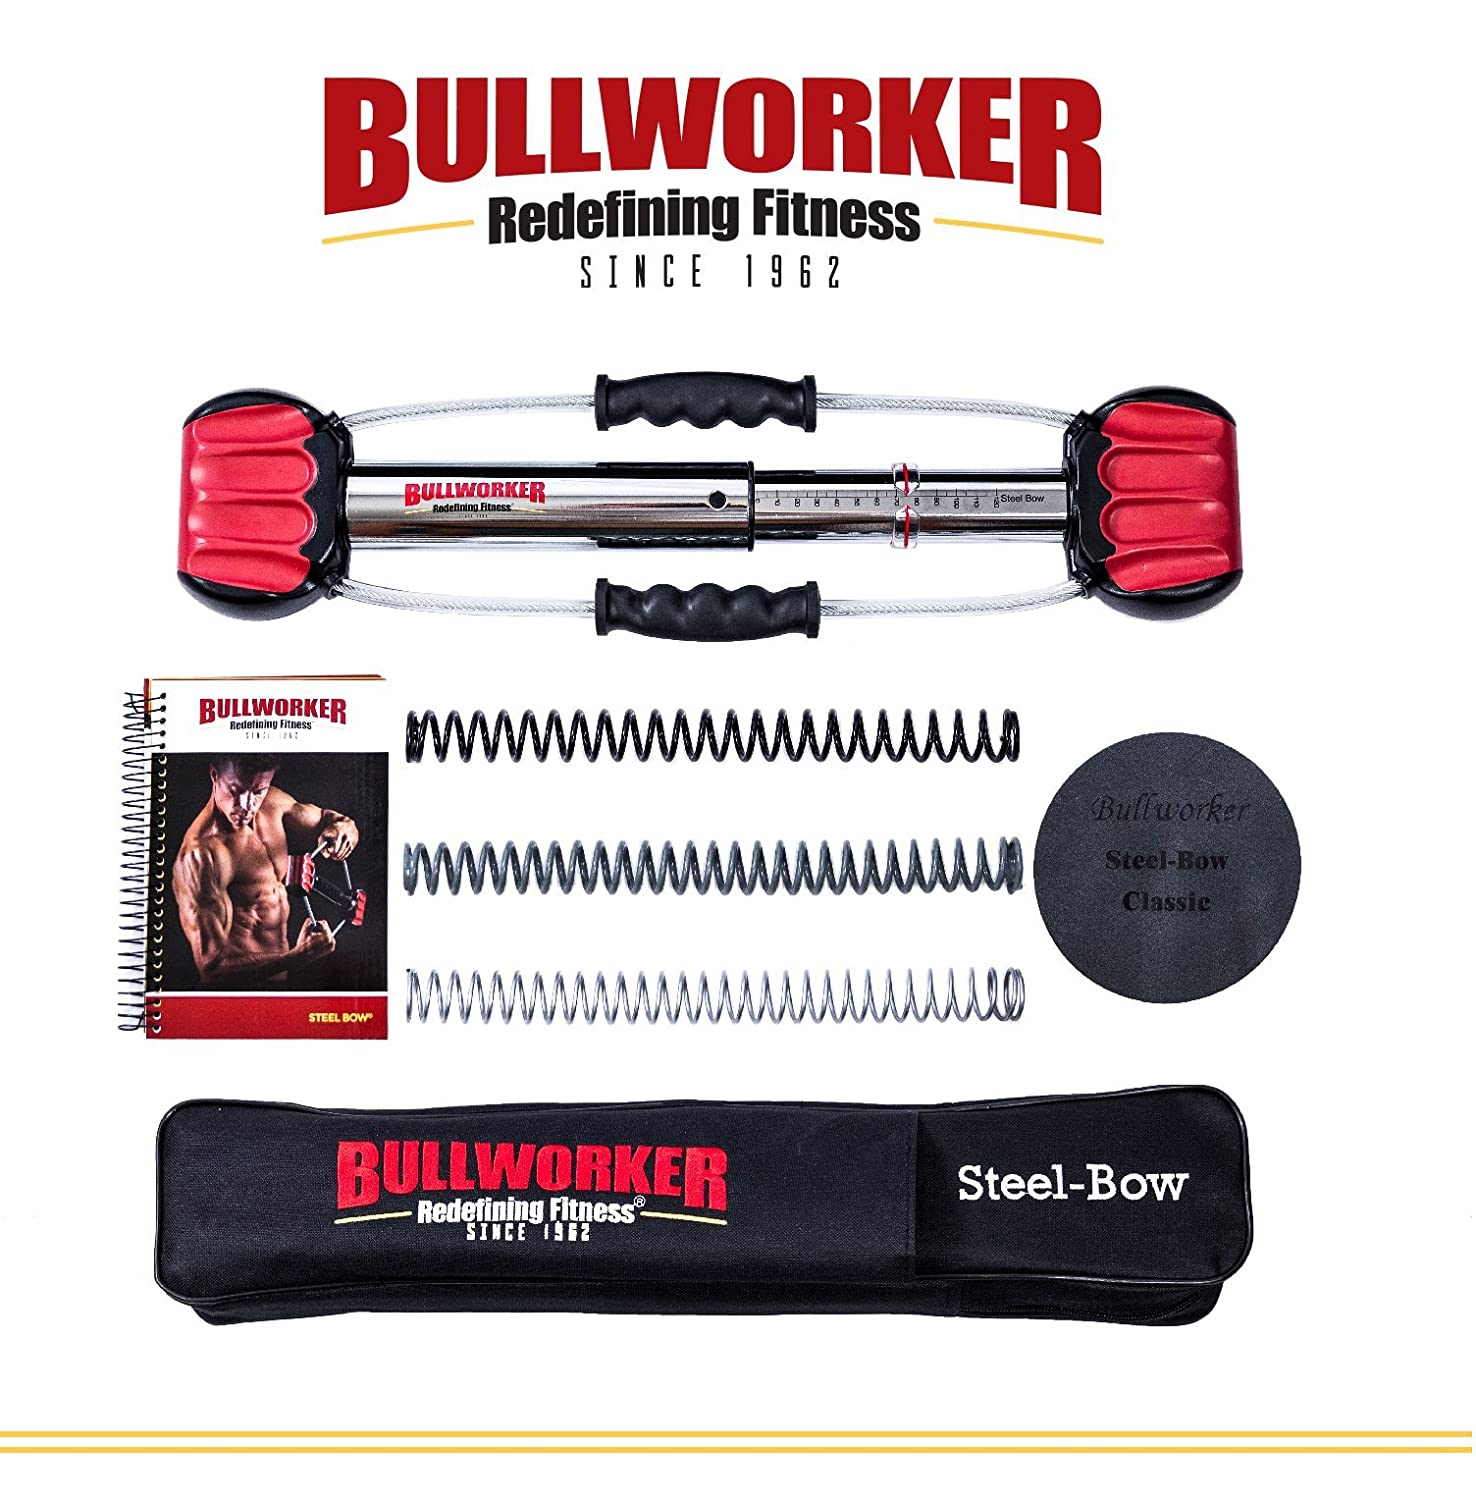 Bullworker 50cm Steel Bow - Full Body Workout - Isometric